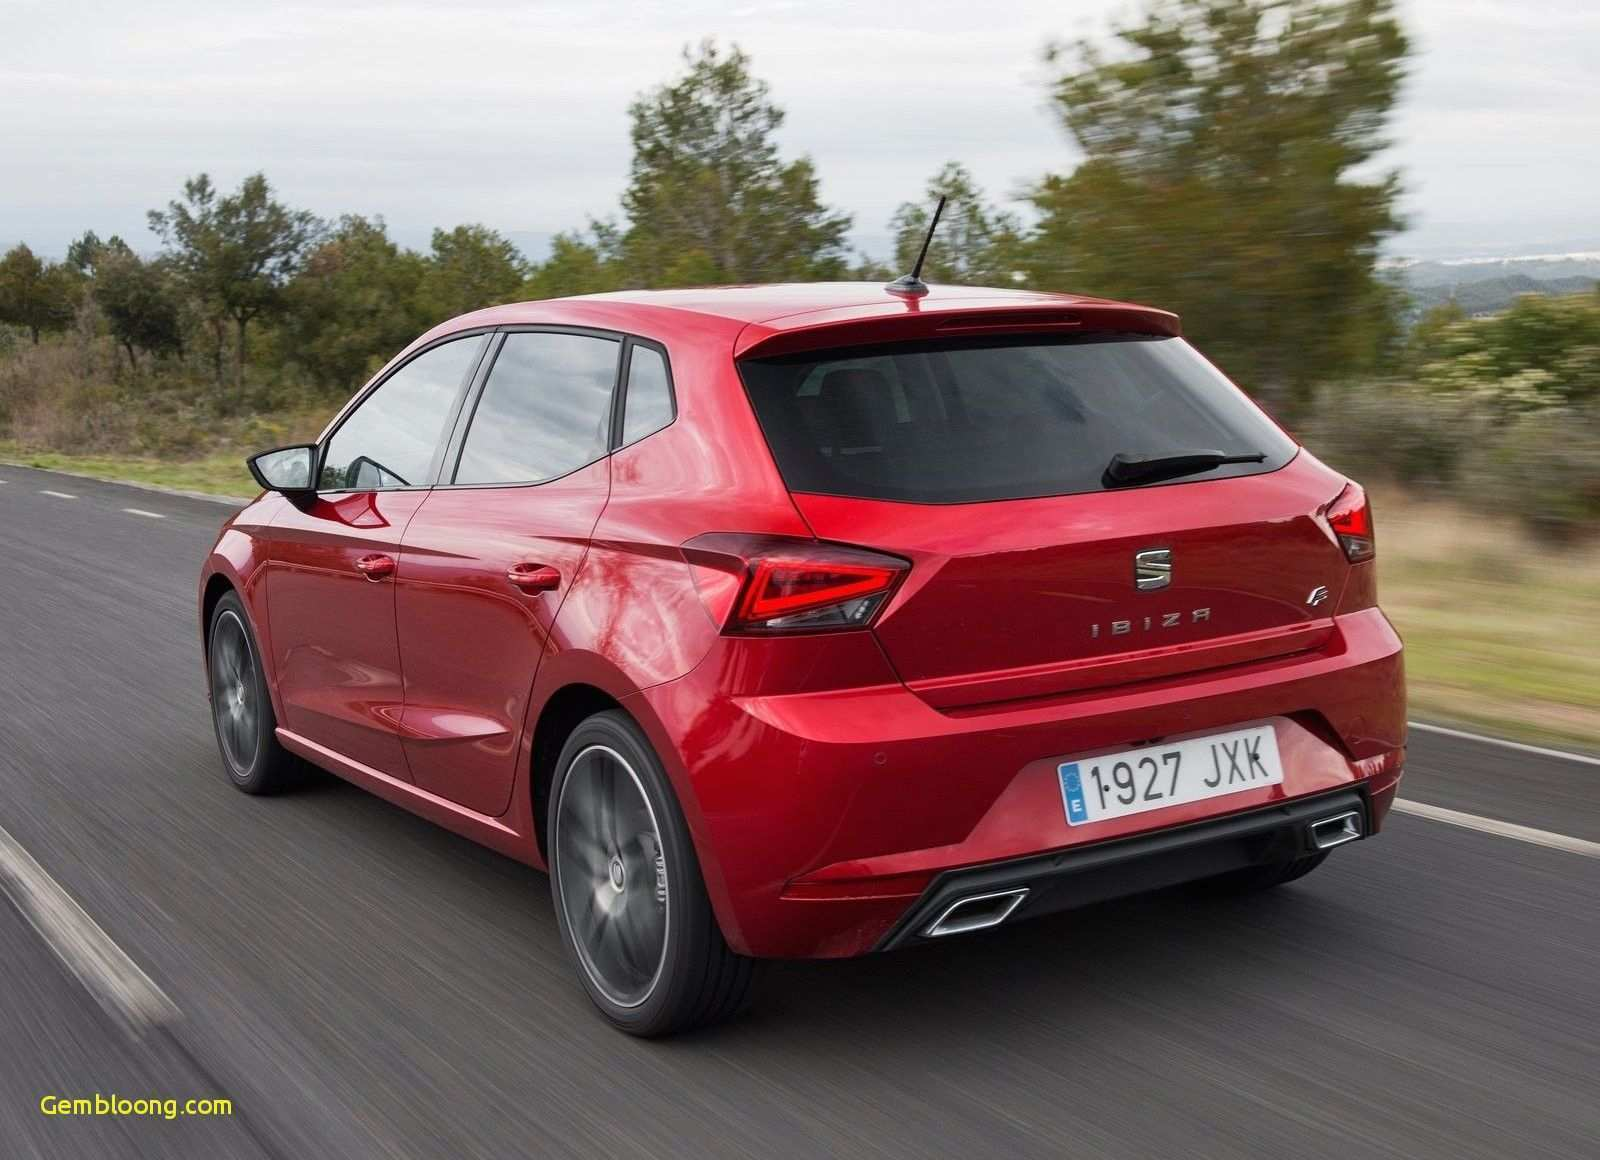 96 The 2020 New Seat Ibiza Egypt Mexico Style by 2020 New Seat Ibiza Egypt Mexico